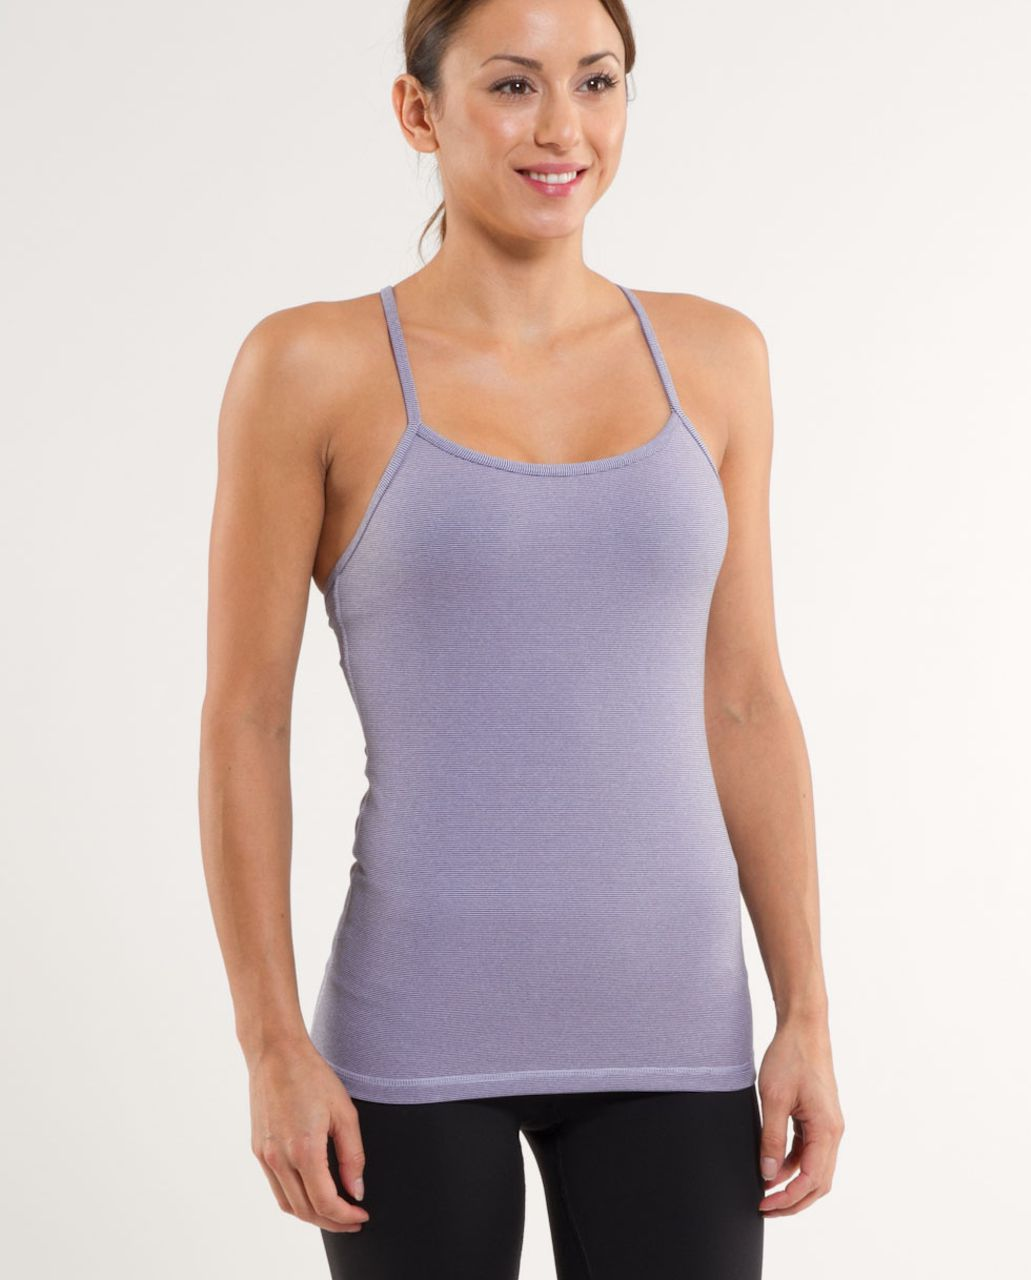 Lululemon Power Y Tank - Lilac Heathered Coal Wee Stripe